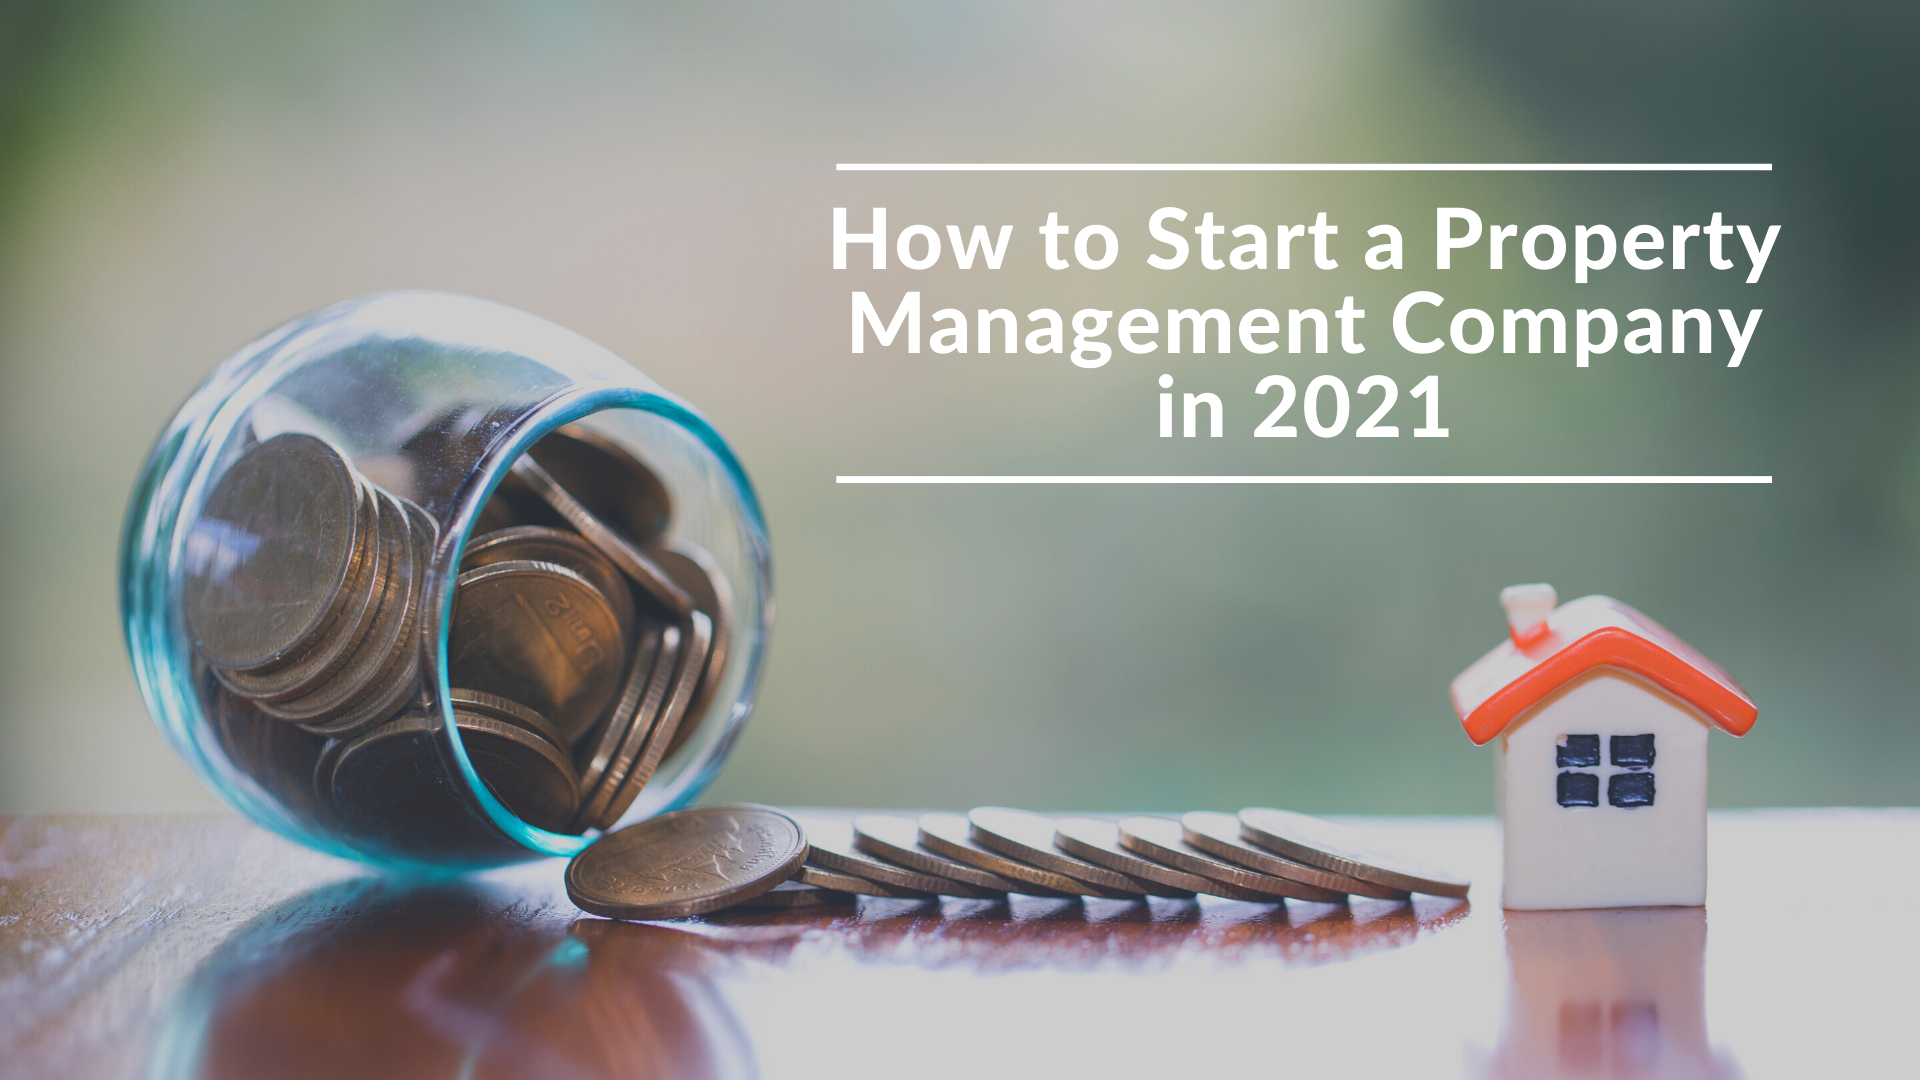 Starting your property management company can be a bit daunting in the beginning especially for newcomers. In this guide, we discuss the key steps you should be aware of as a new property manager, which will help you grow your business right from the start.